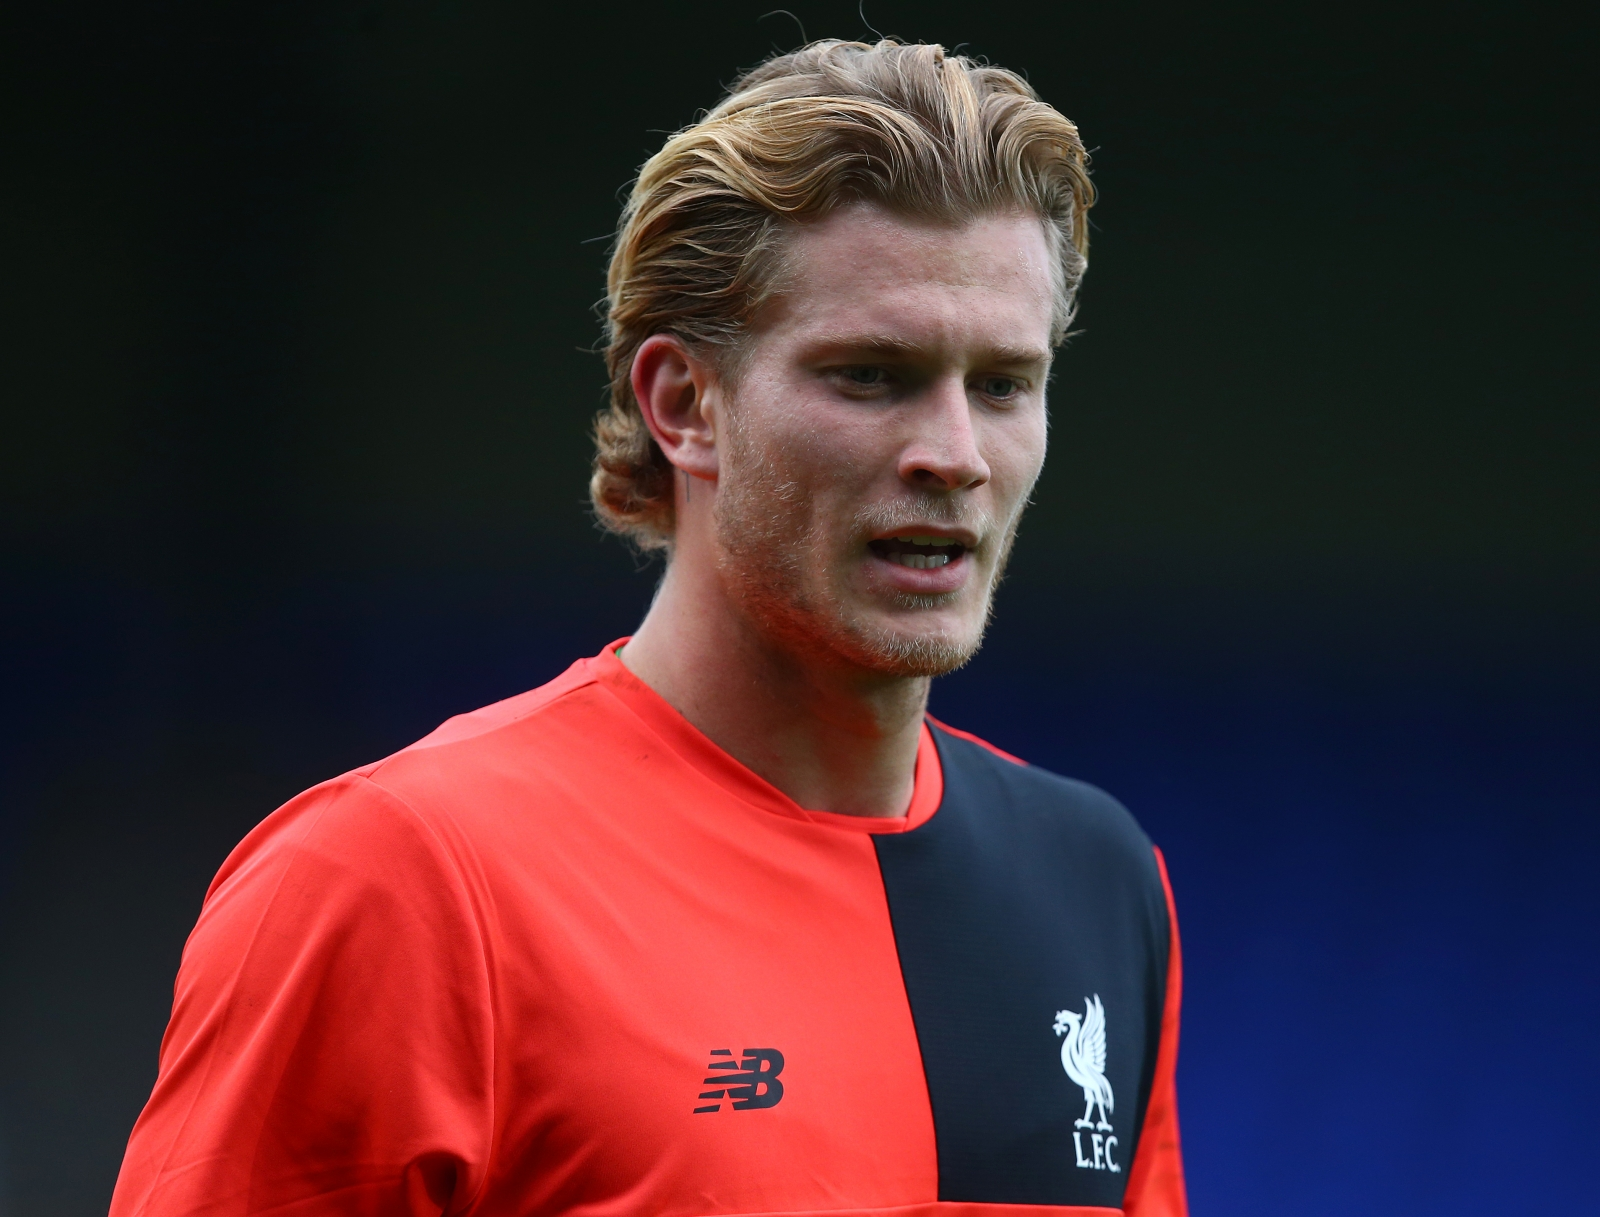 Liverpool goalkeeper Loris Karius turns down Rio 2016 ...